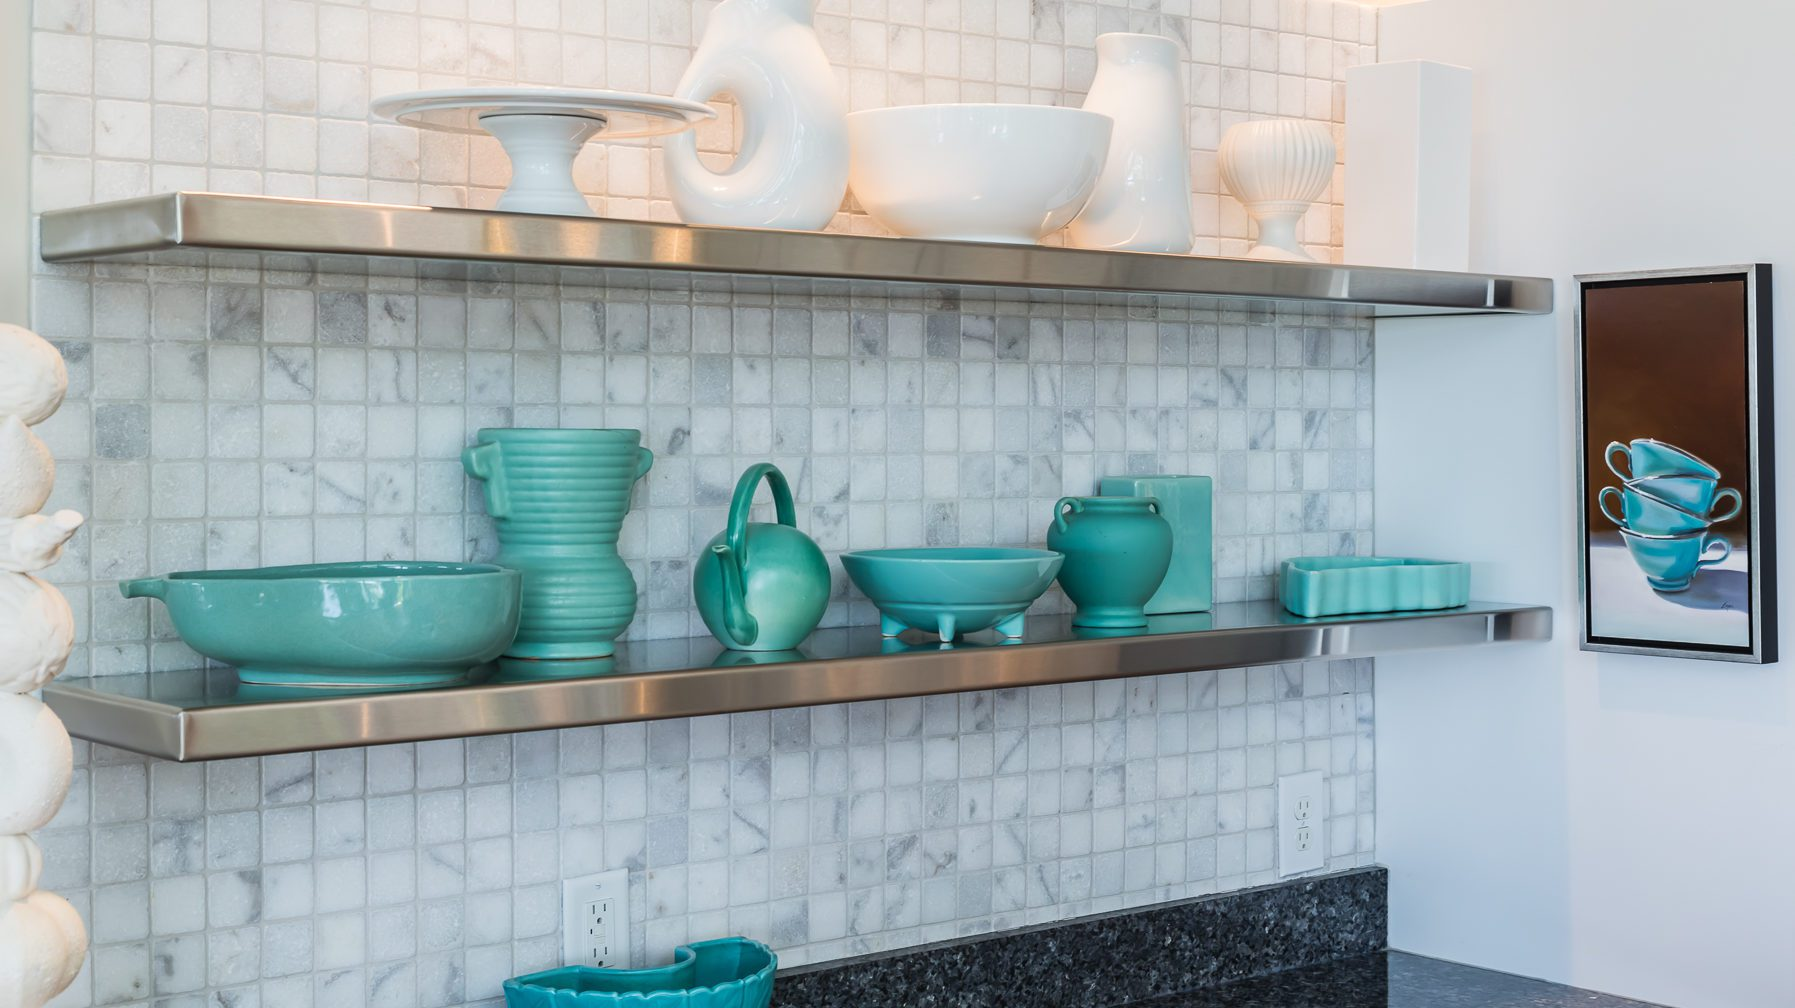 Line up holes with grout lines to prevent cracks in tile